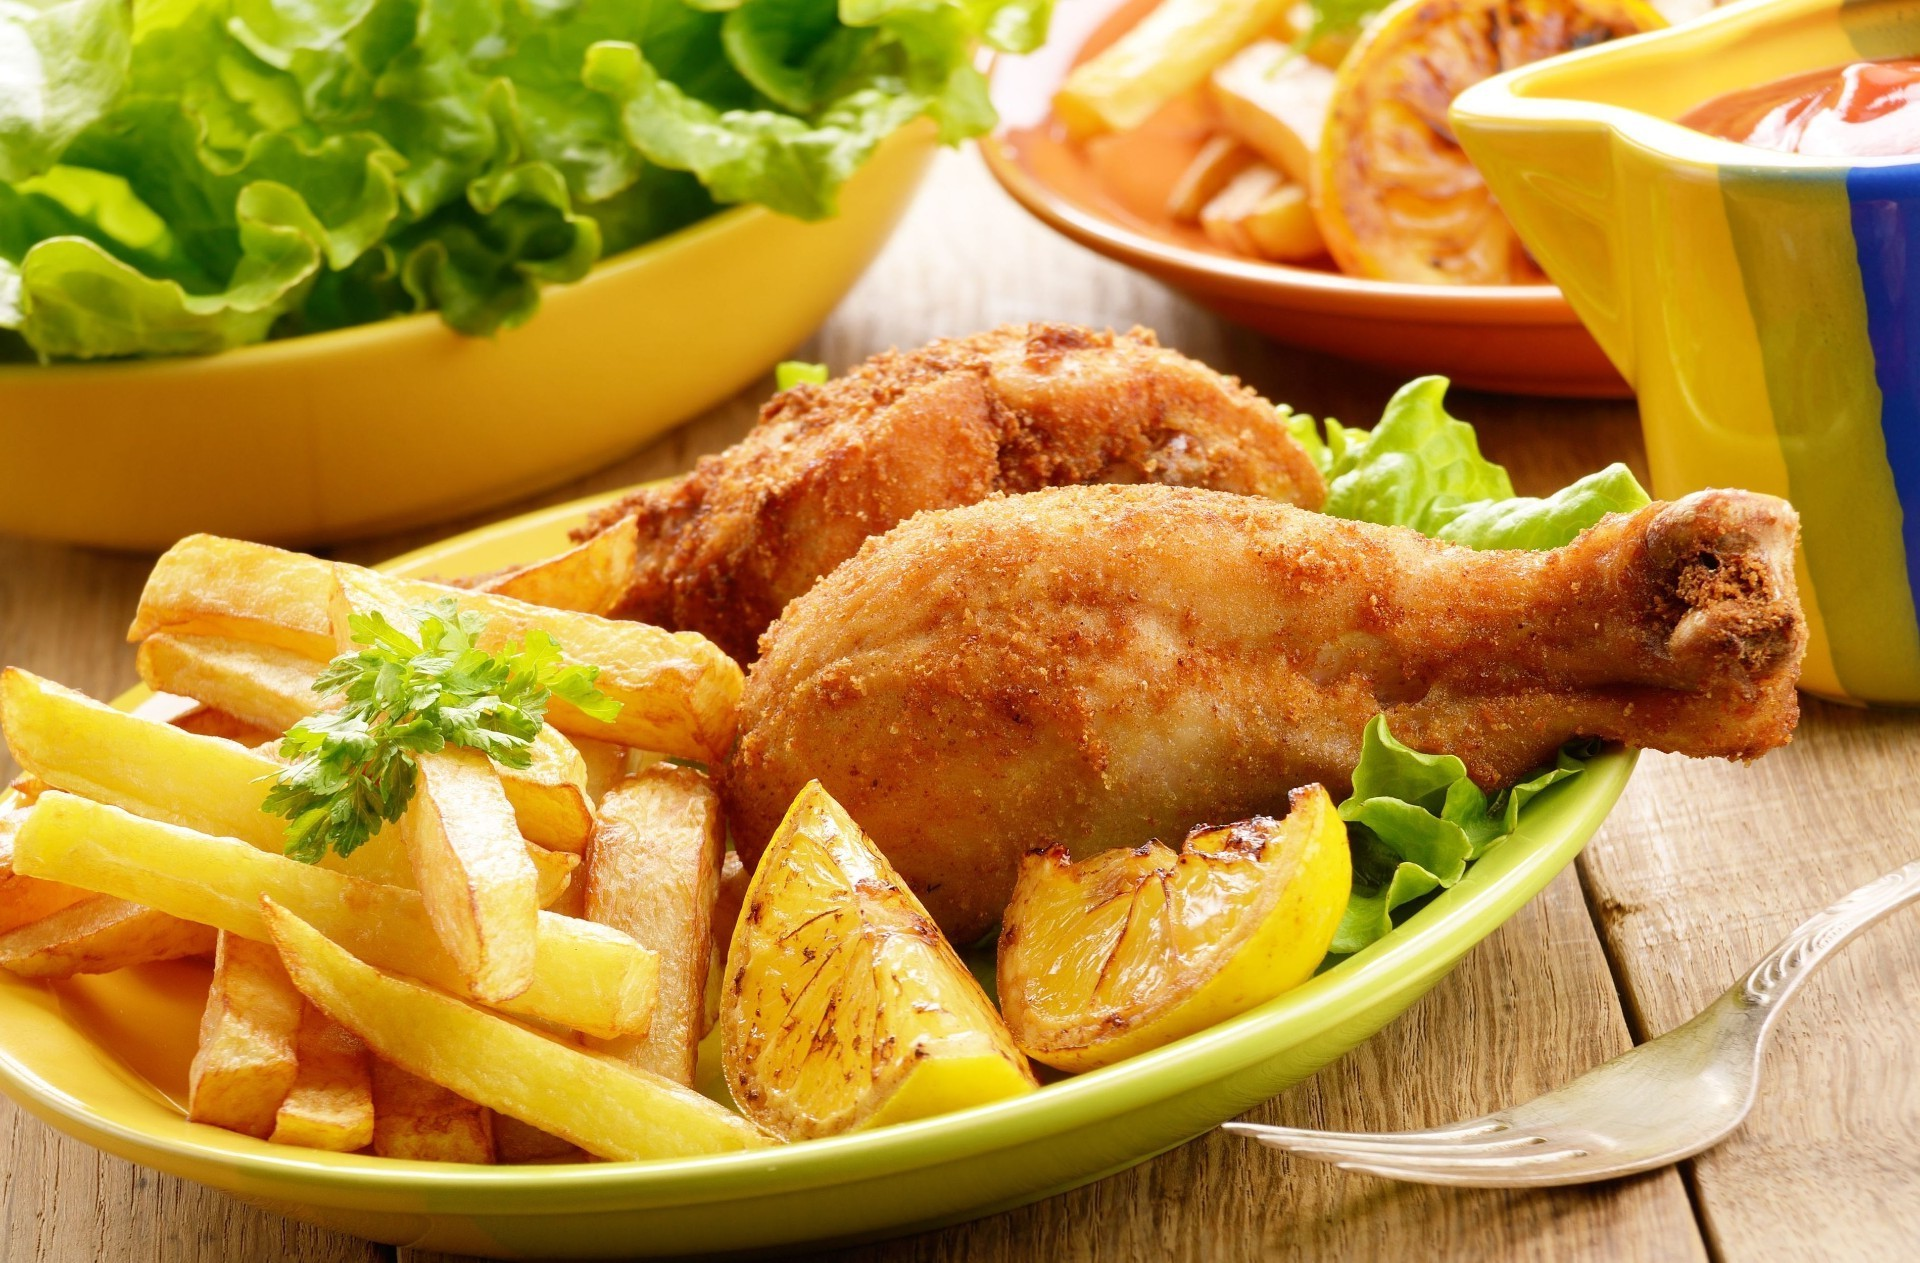 food & drink dinner lunch food lettuce meal delicious meat chicken vegetable plate french fries salad dish nutrition potato cuisine